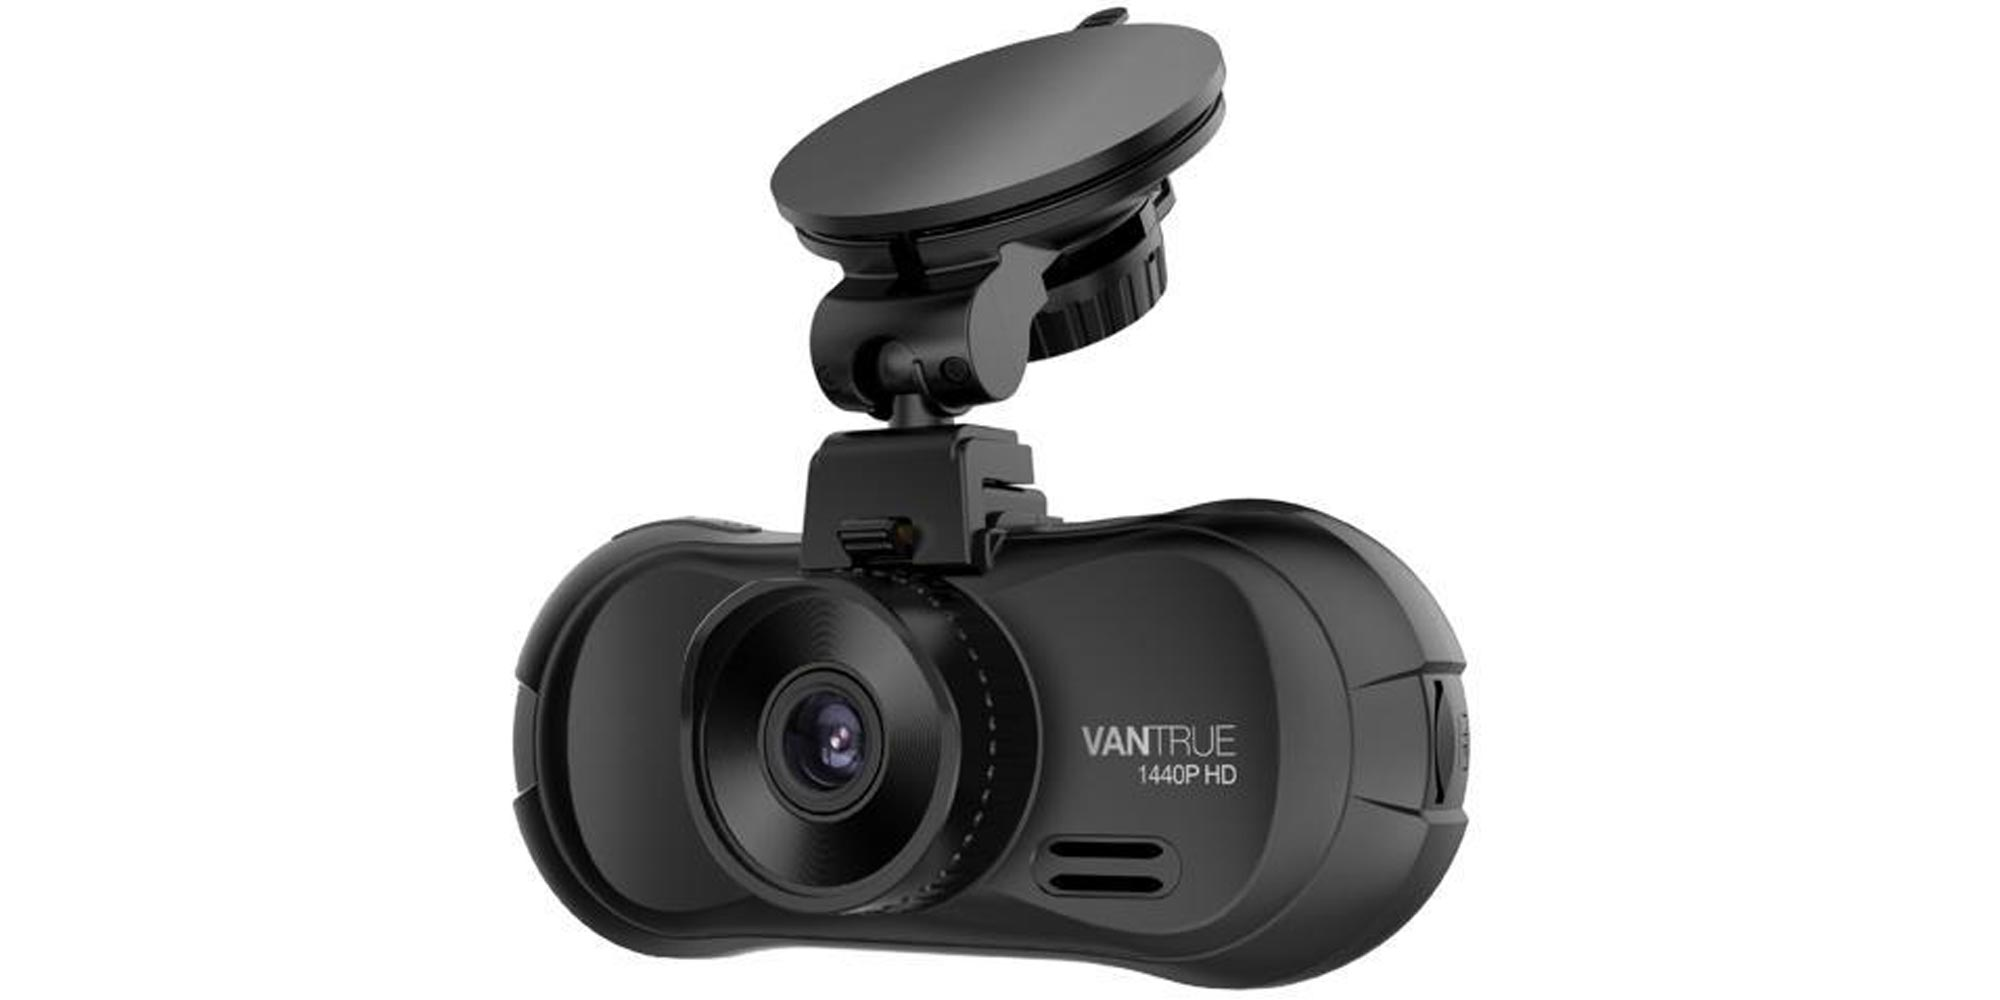 Keep records of your summer drives w/ a 1440p Vantrue dash cam for $110, more from $15